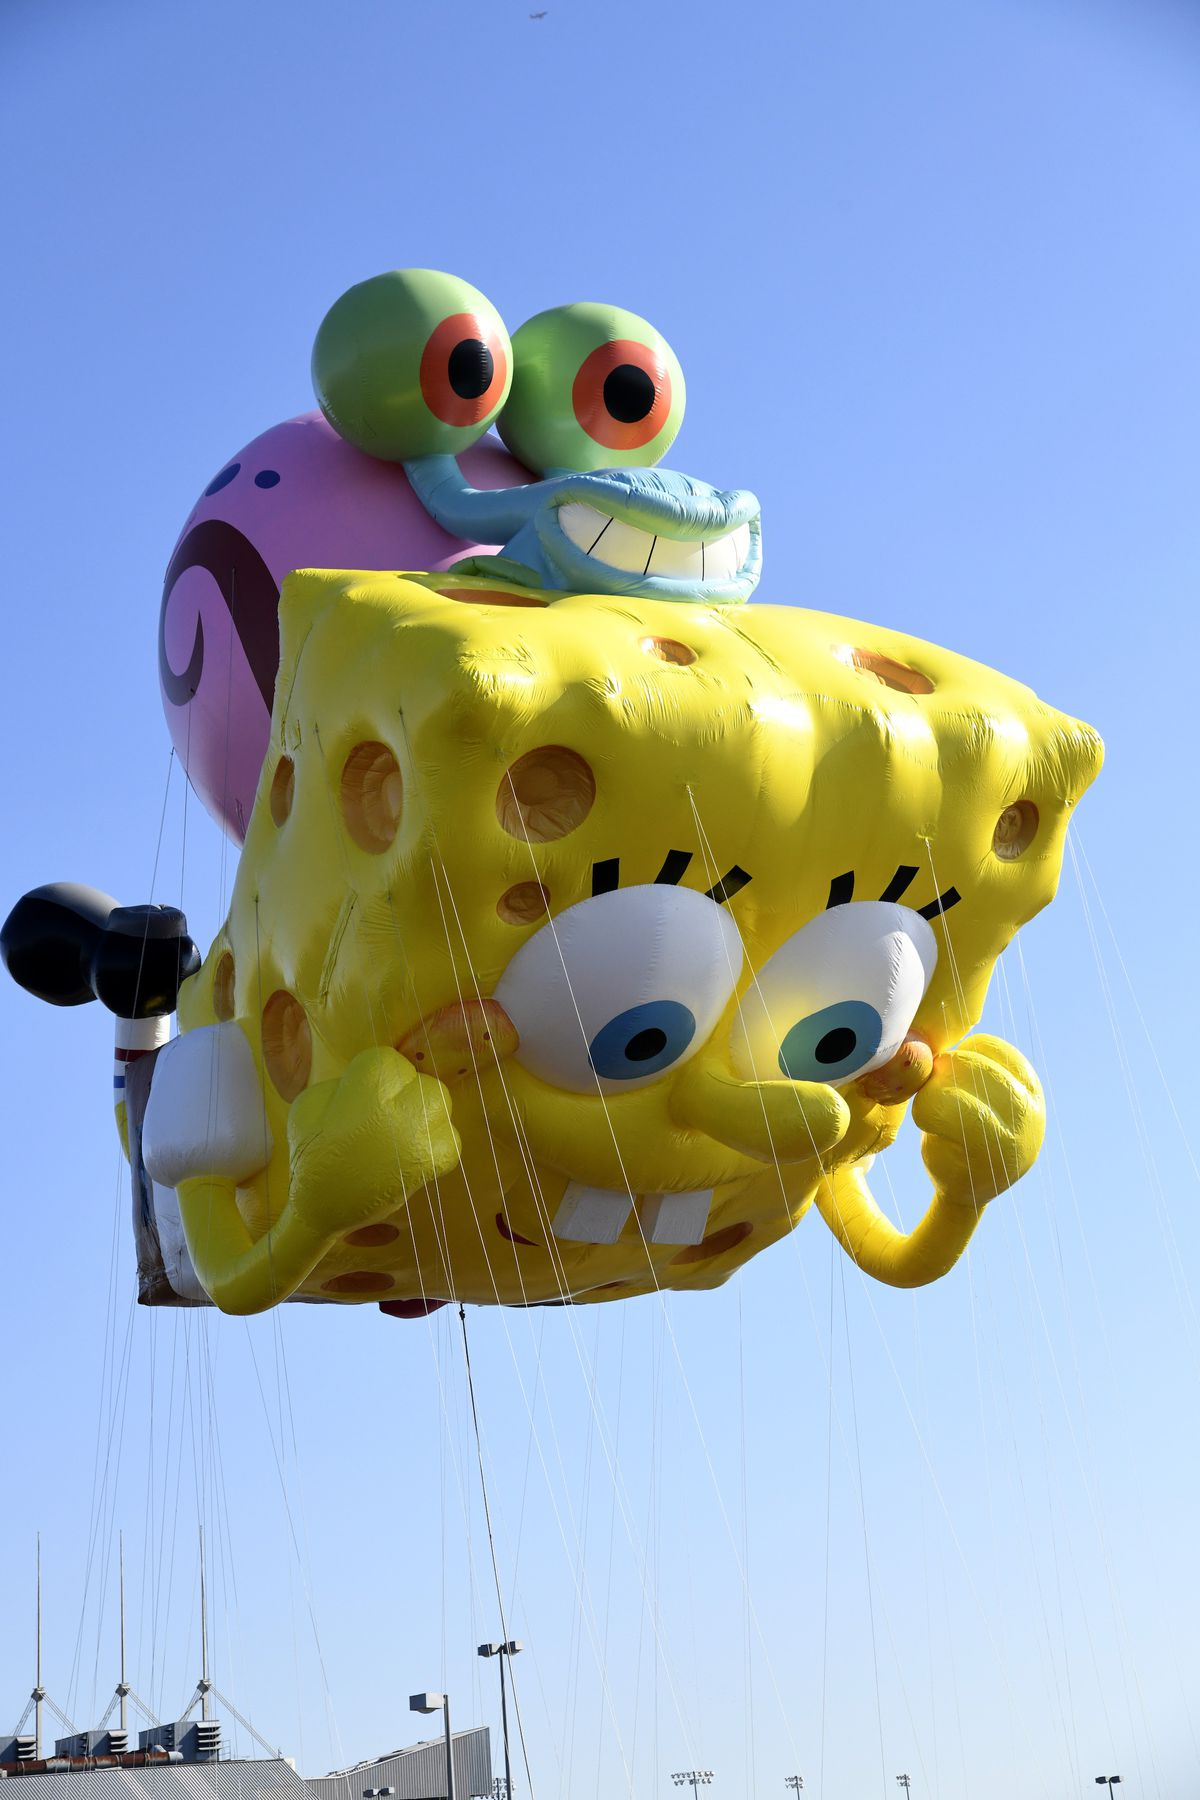 Spongebob Squarepants & Gary by Nickelodeon is seen as Macy's unveils new giant character balloons for the 93rd annual Macy's Thanksgiving Day Parade